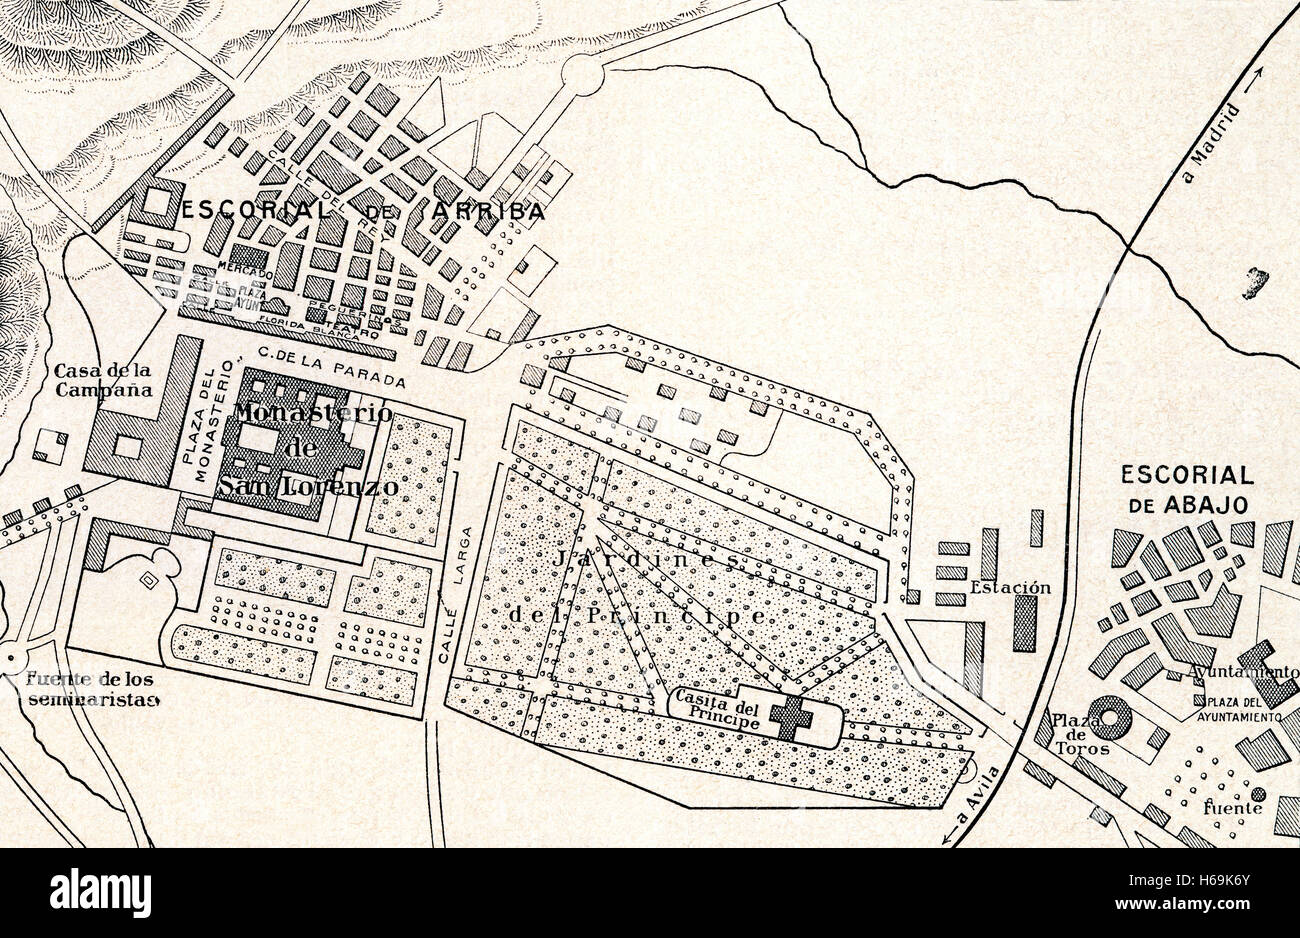 A plan of The Royal Site of San Lorenzo de El Escorial, Madrid, Spain, commonly known as El Escorial. Stock Photo